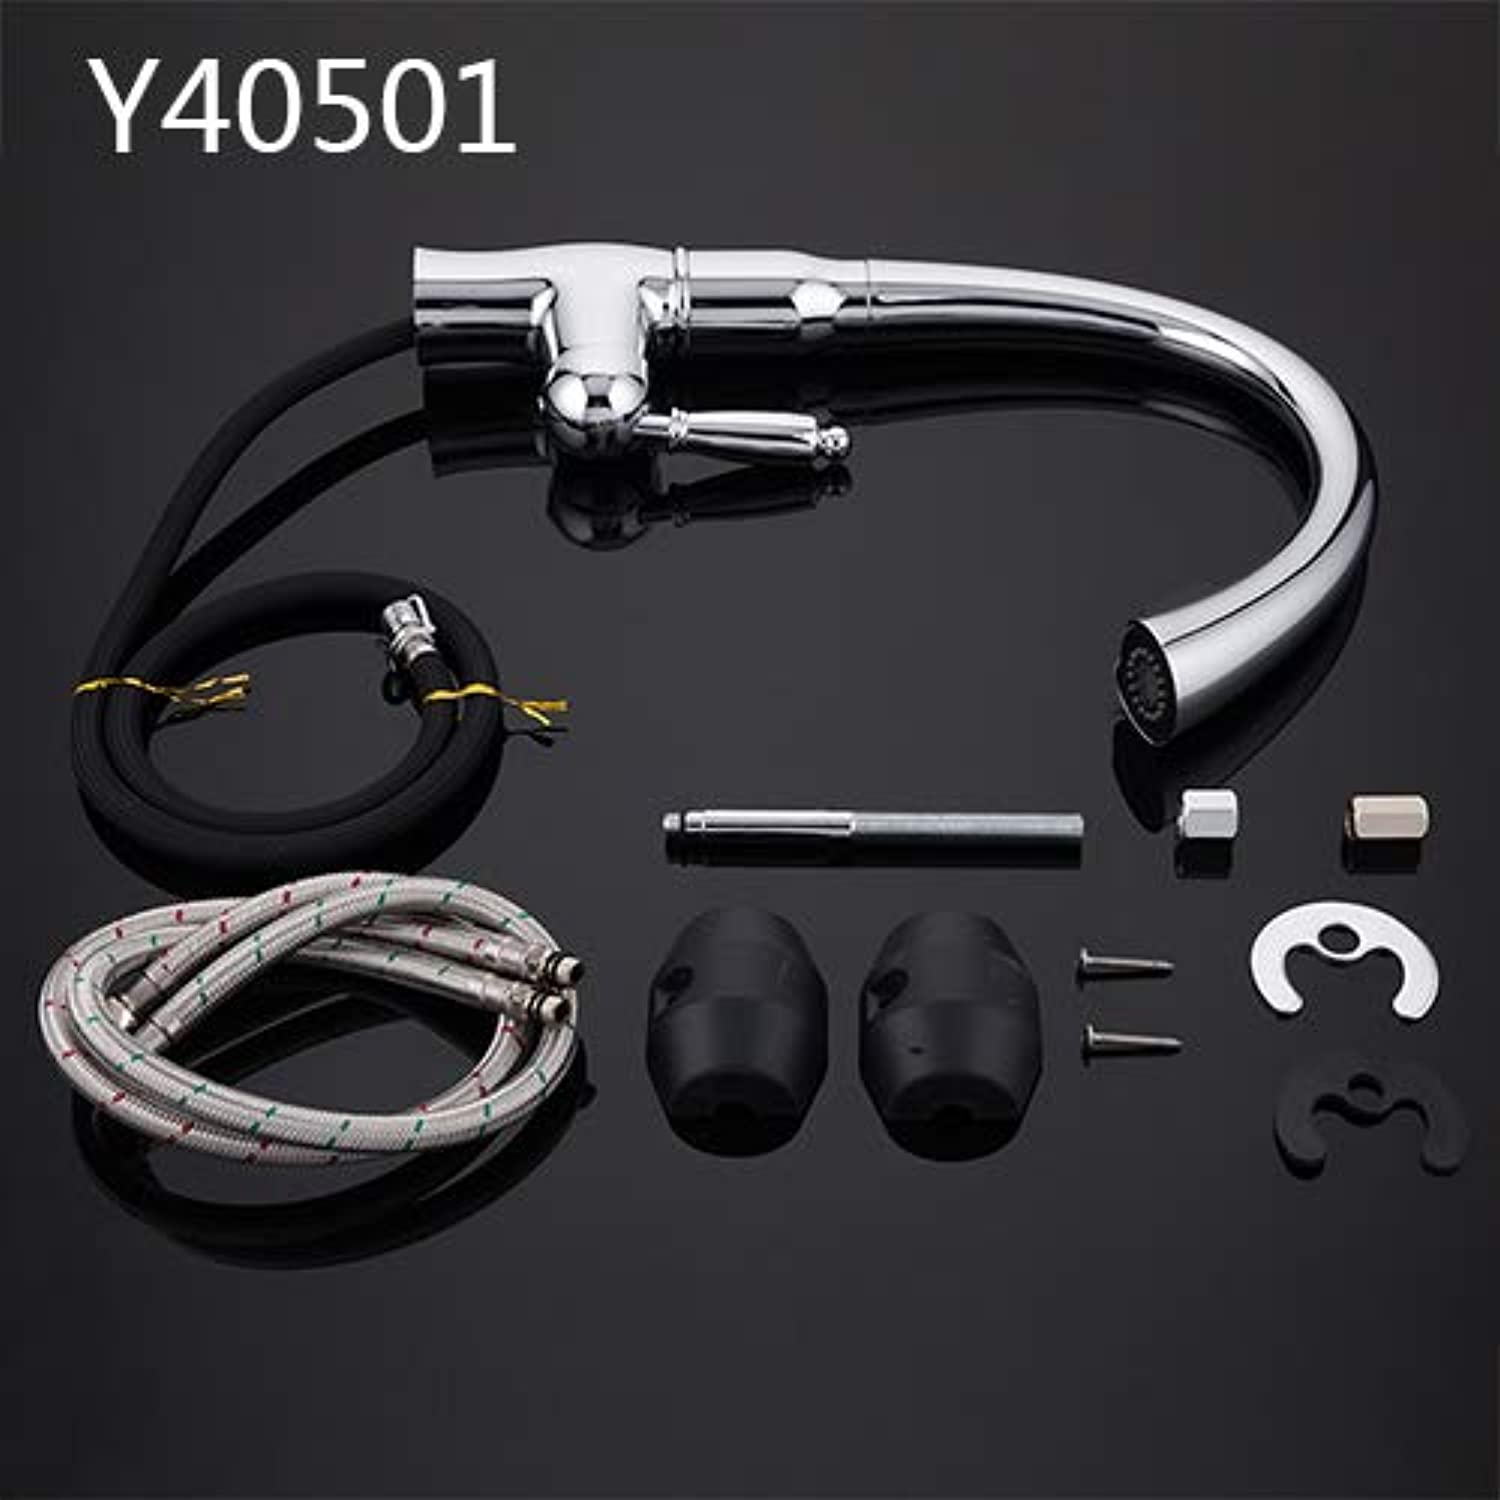 CZOOR Kitchen Faucets Pull Out Kitchen Faucet Mixer Brass Kitchen Water taps Mixers Sink faucets tap Mixer